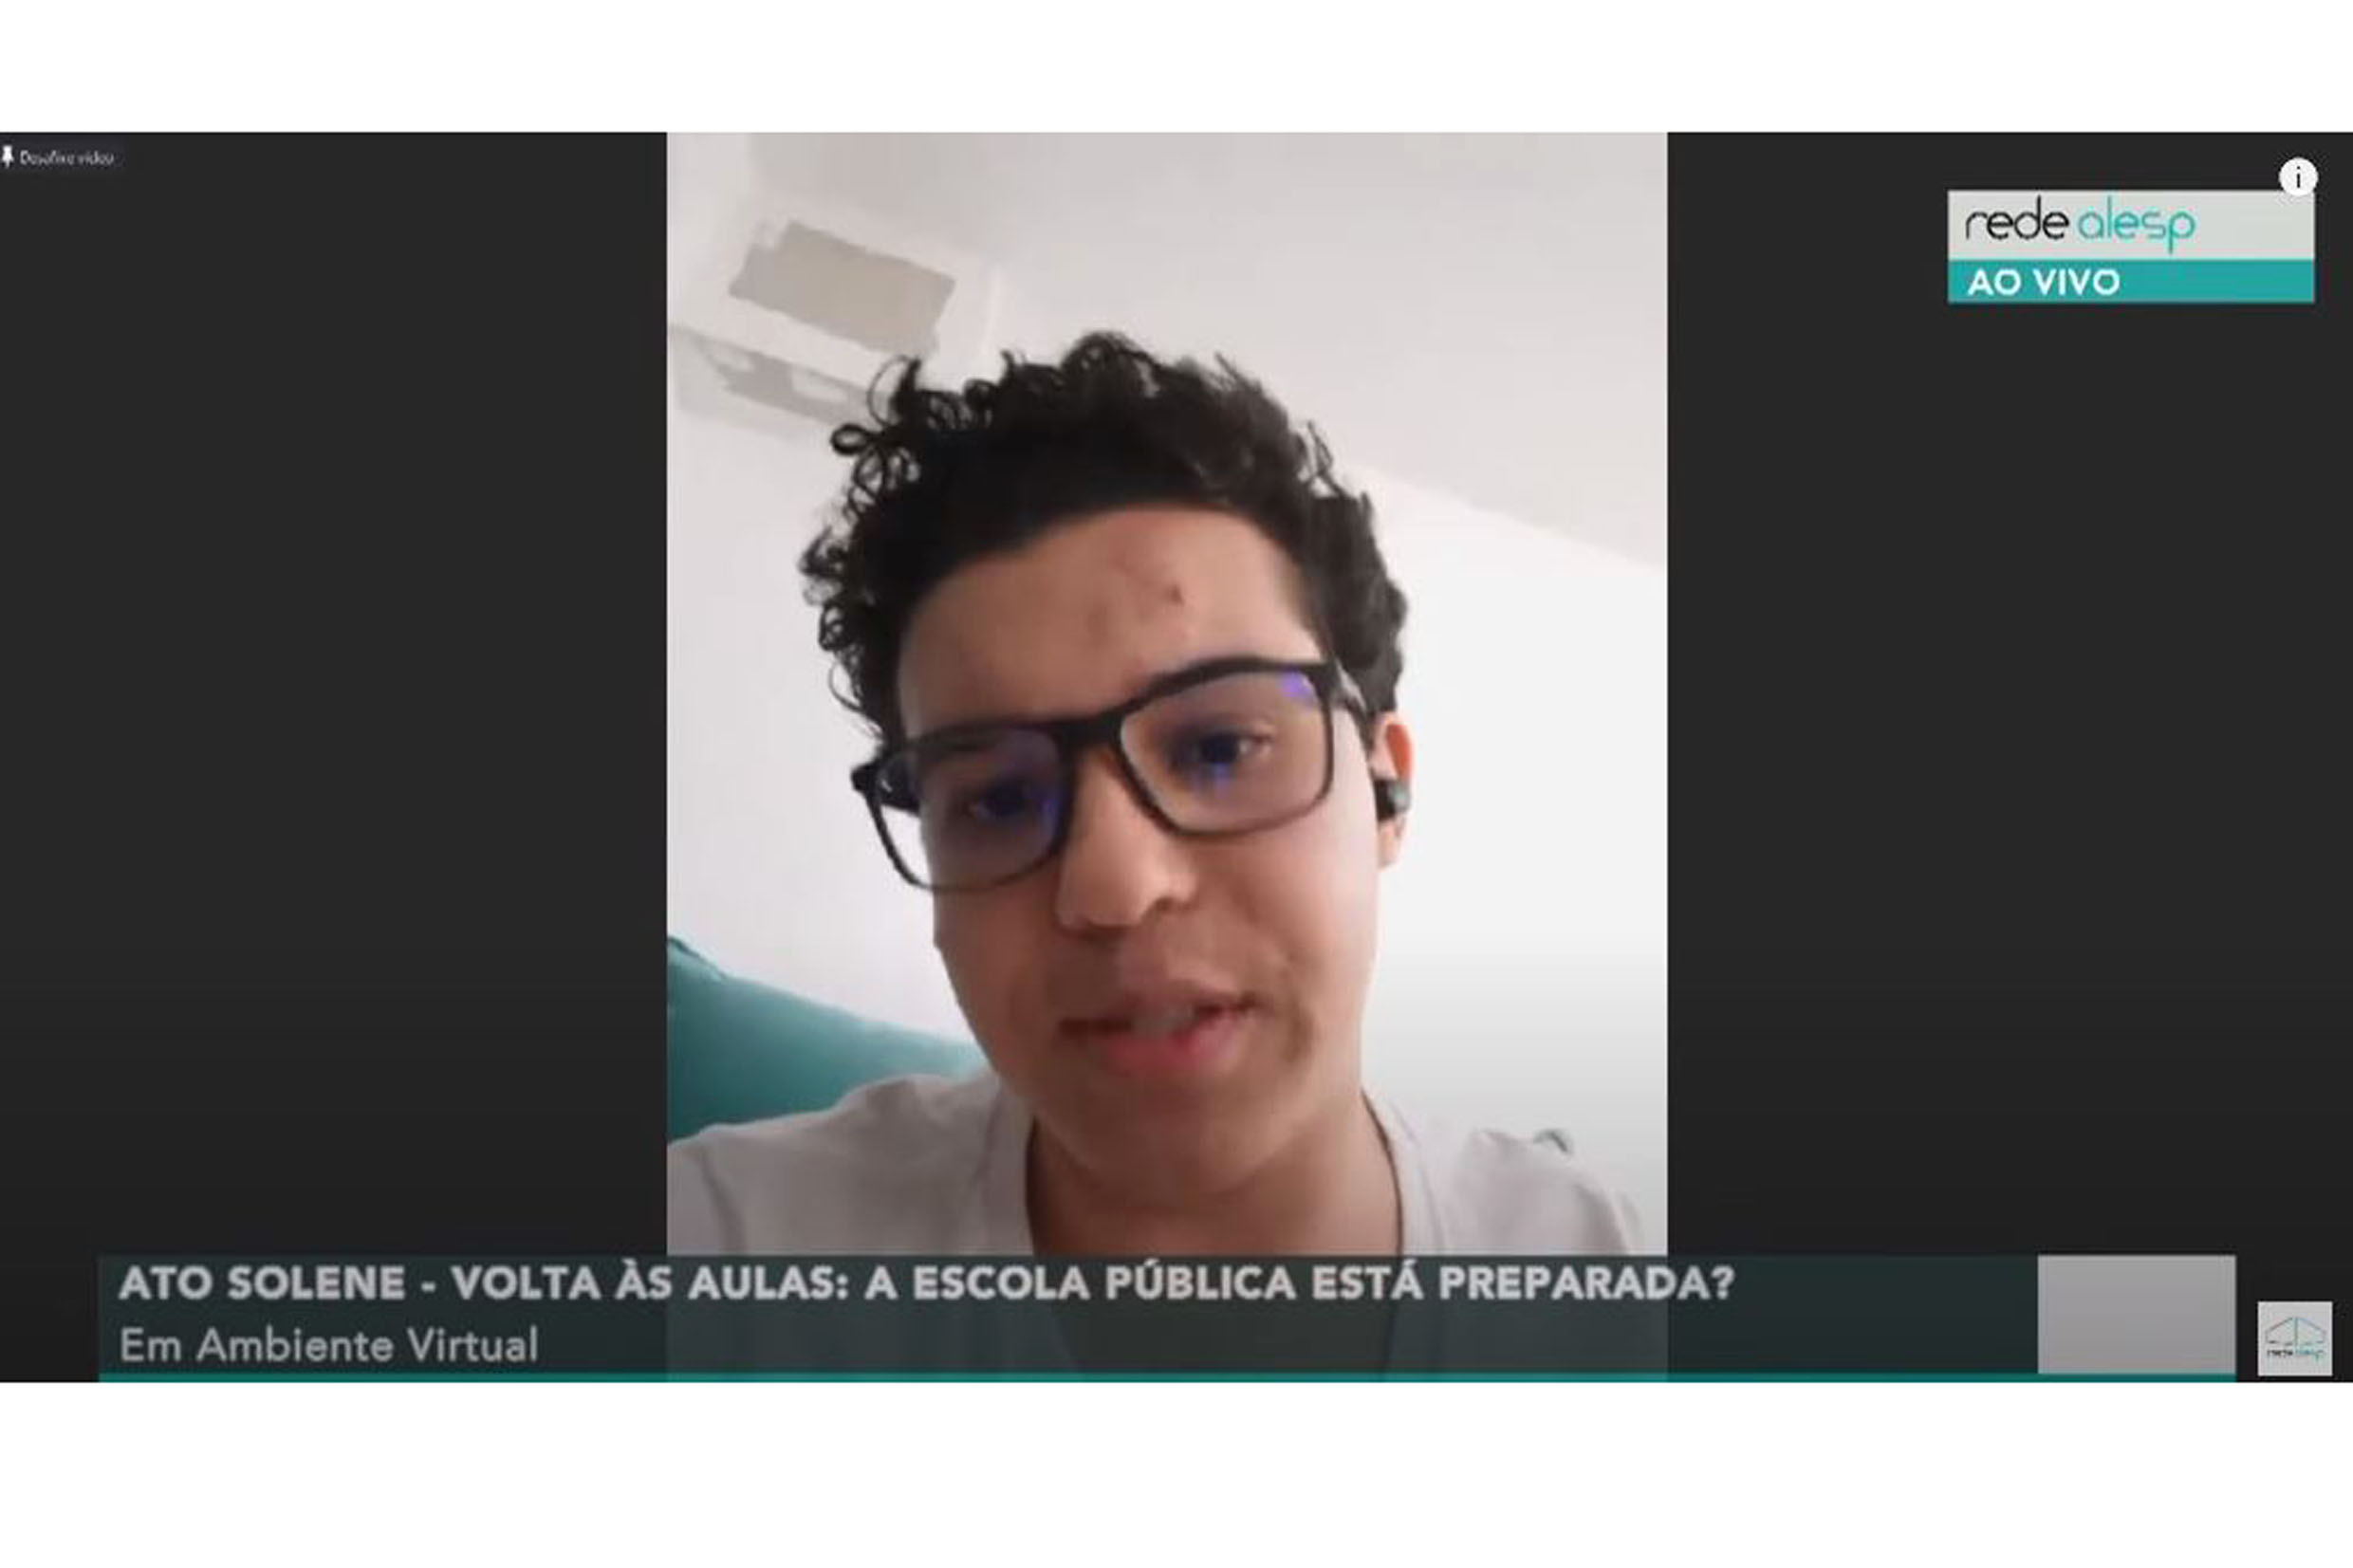 Bruno<a style='float:right' href='https://www3.al.sp.gov.br/repositorio/noticia/N-07-2020/fg251935.jpg' target=_blank><img src='/_img/material-file-download-white.png' width='14px' alt='Clique para baixar a imagem'></a>